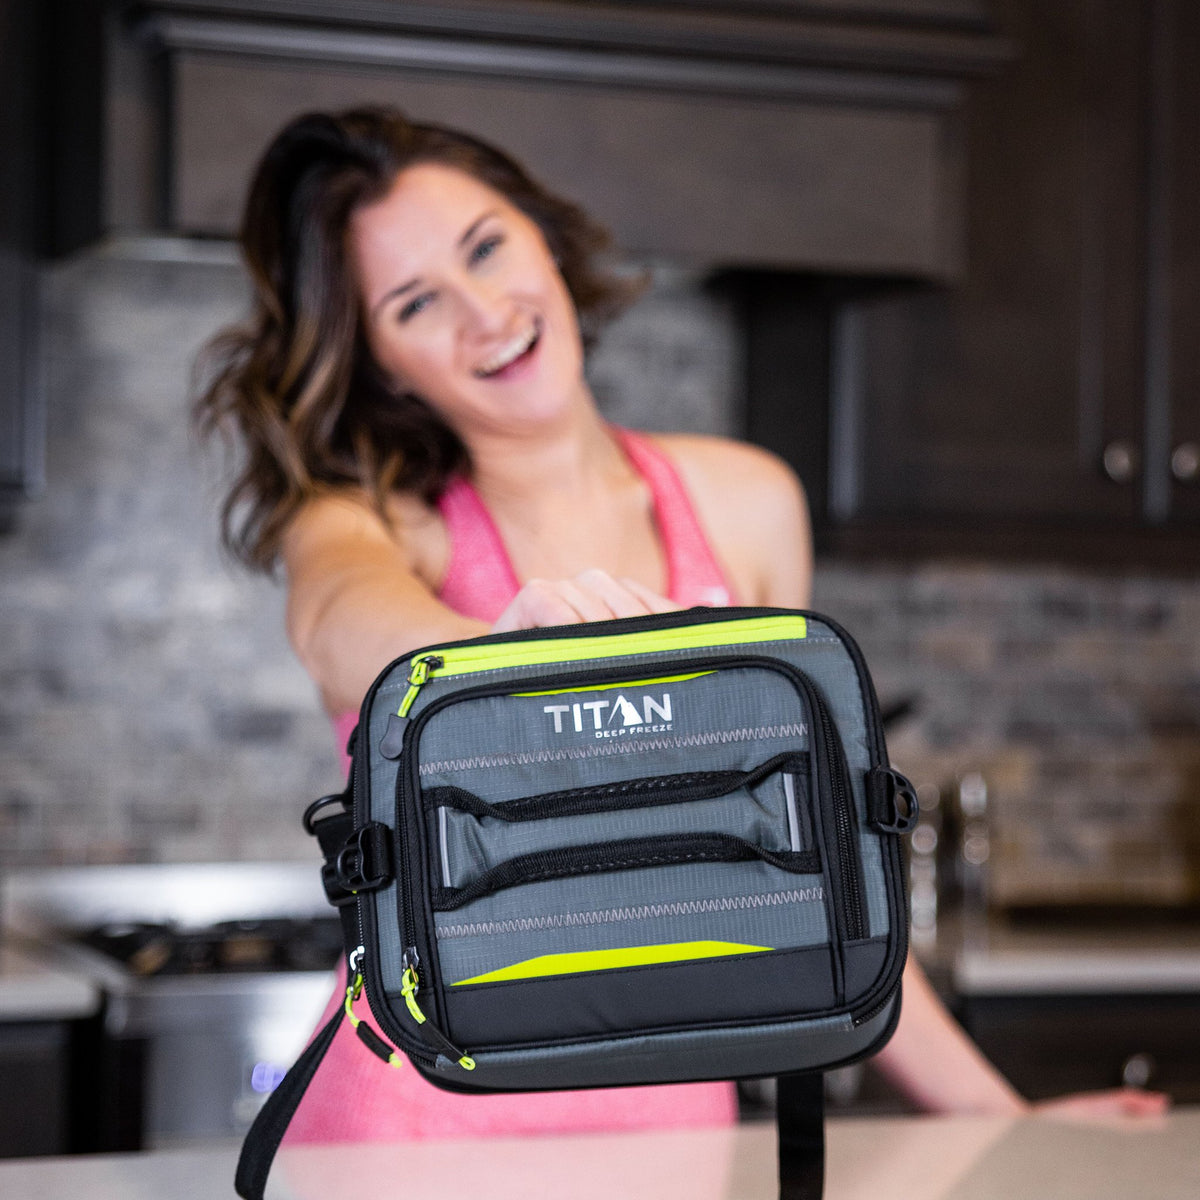 Titan Deep Freeze® High Performance Expandable Horizontal Lunch Pack - Grey - Lifestyle, showing off your cool lunchbag